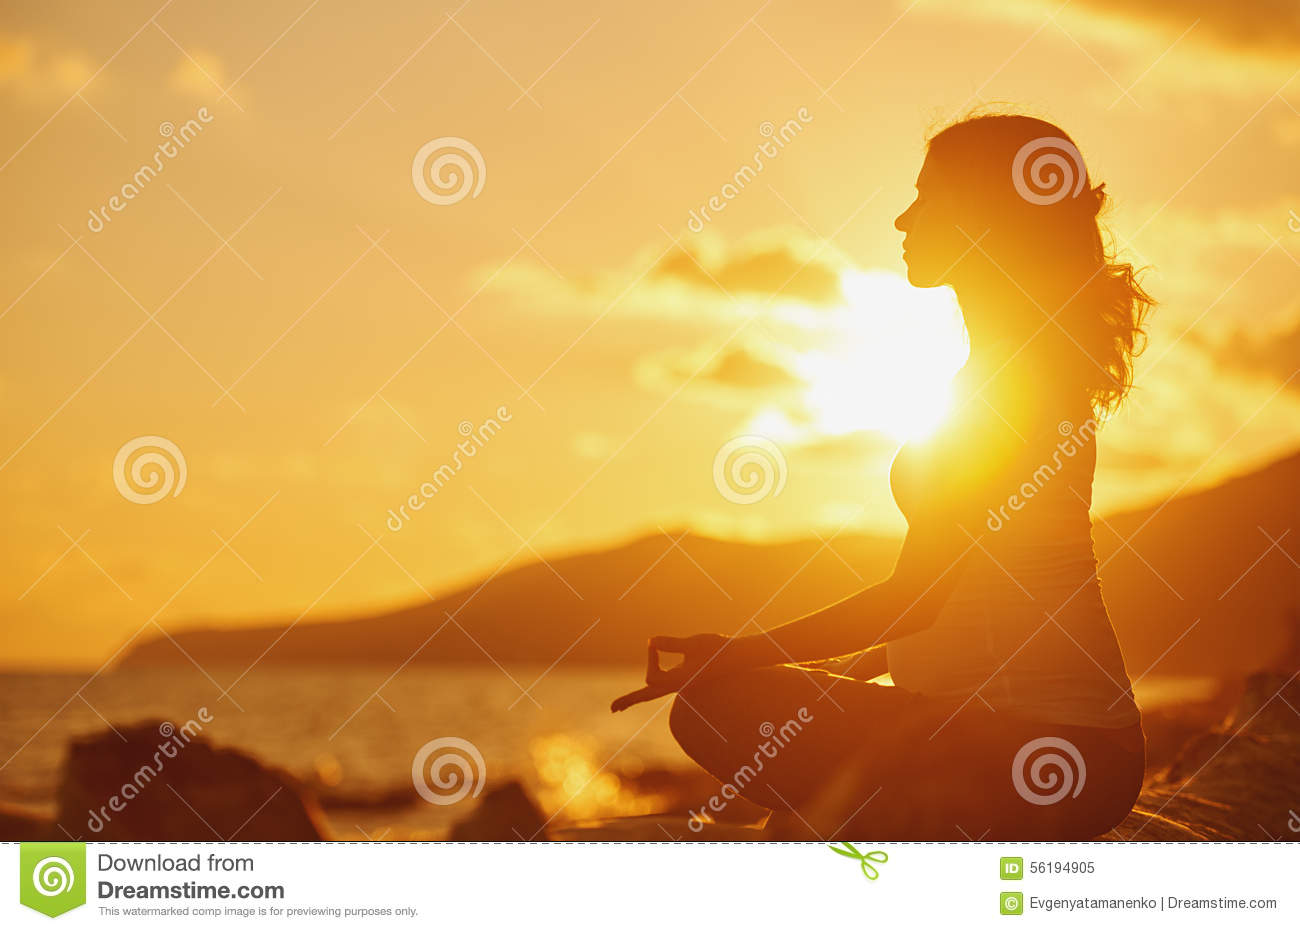 Pregnant Woman Practicing Yoga In Lotus Position On Beach